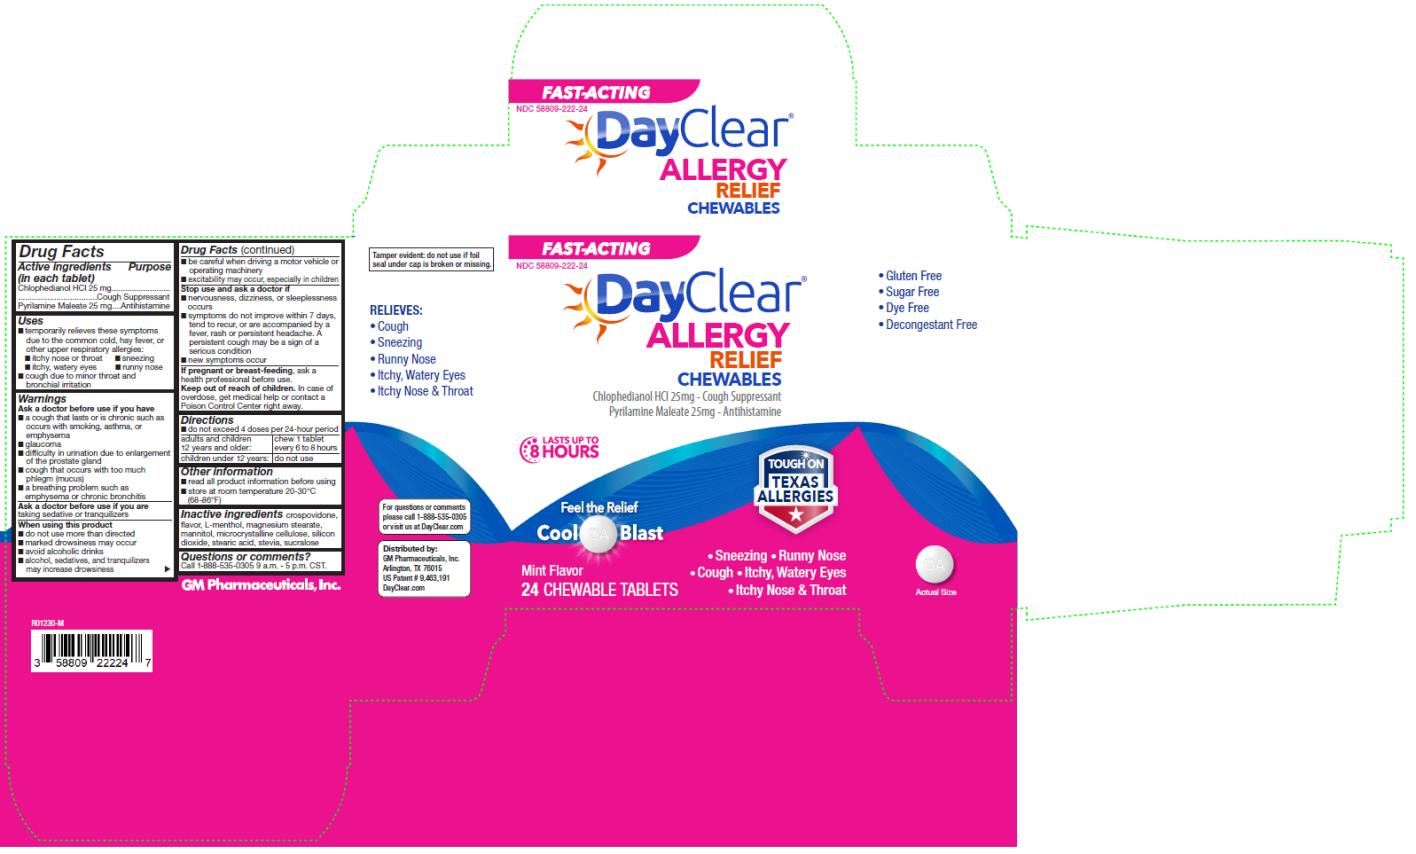 PRINCIPAL DISPLAY PANEL NDC 58809-222-24 DayClear Allergy Relief Chewables 24 Chewable Tablets